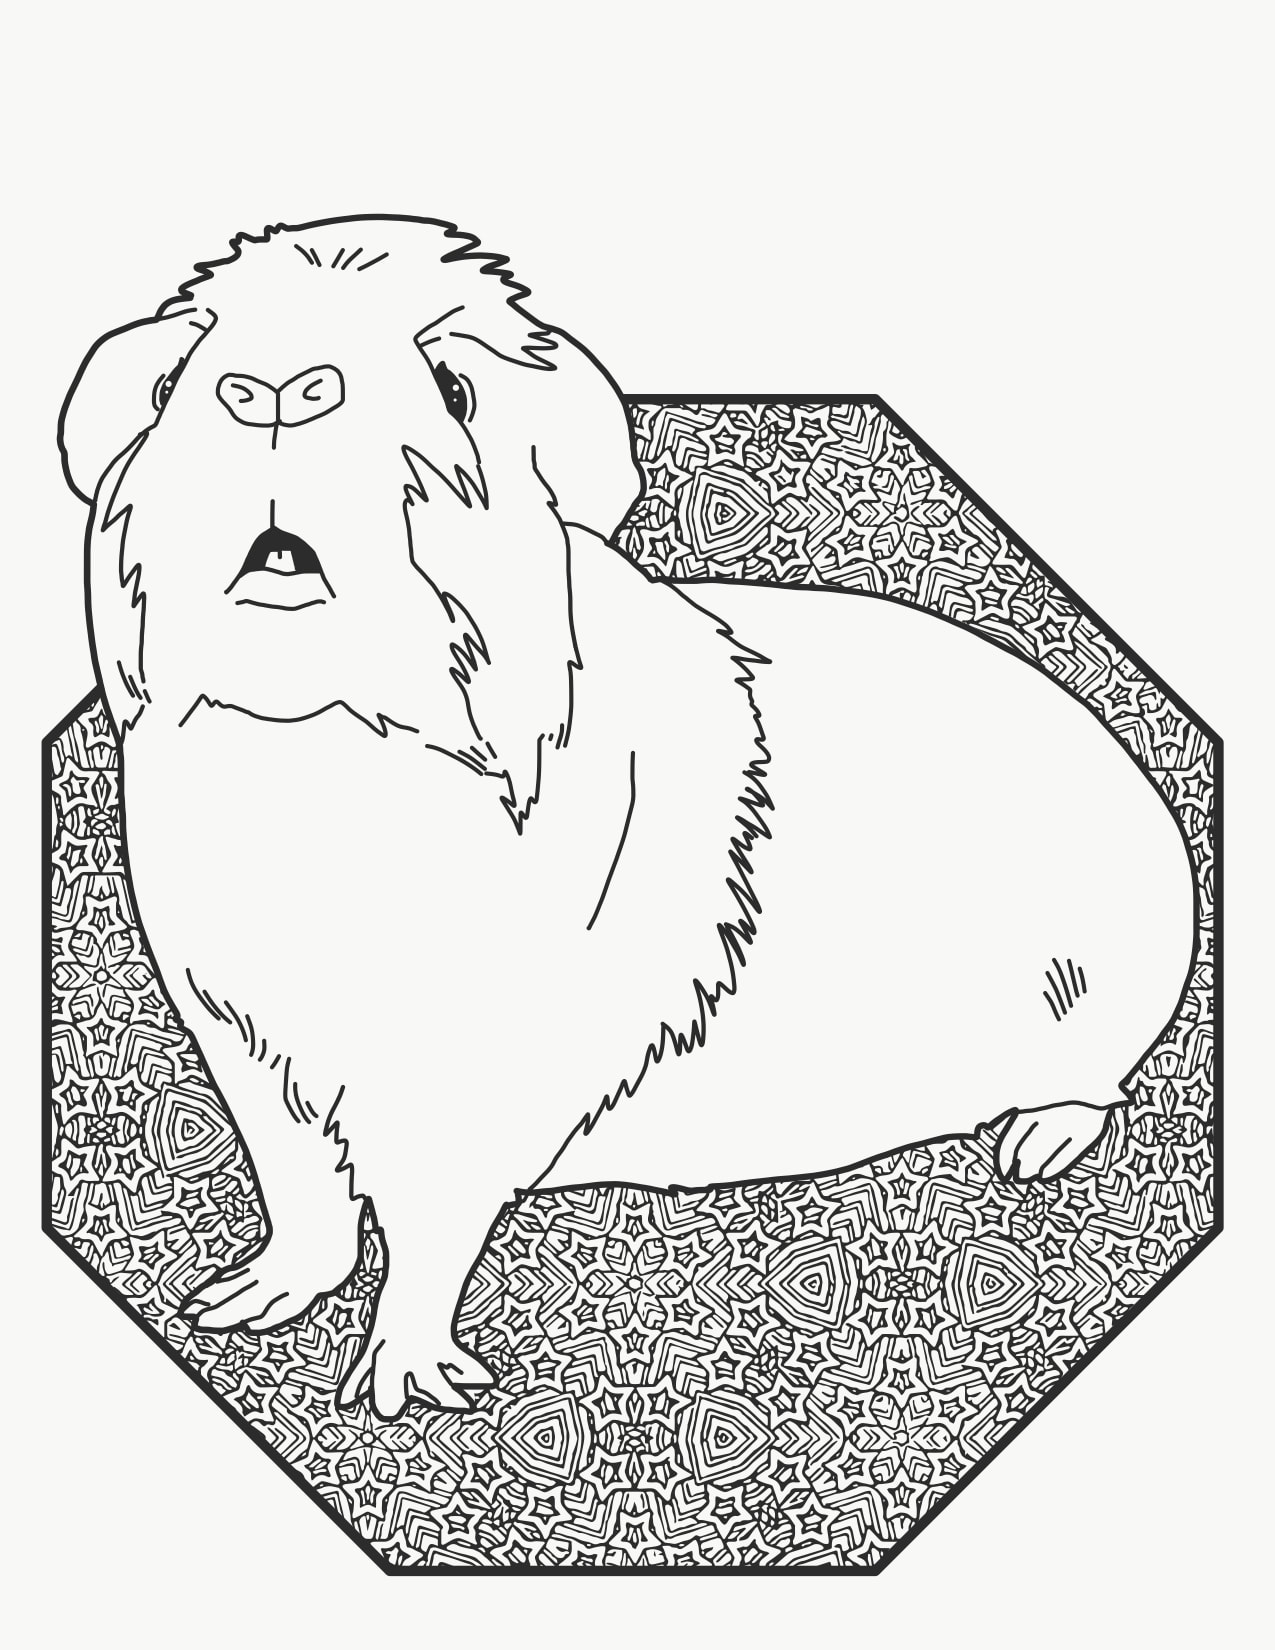 Wondering Guinea Pig Downloadable Coloring Page